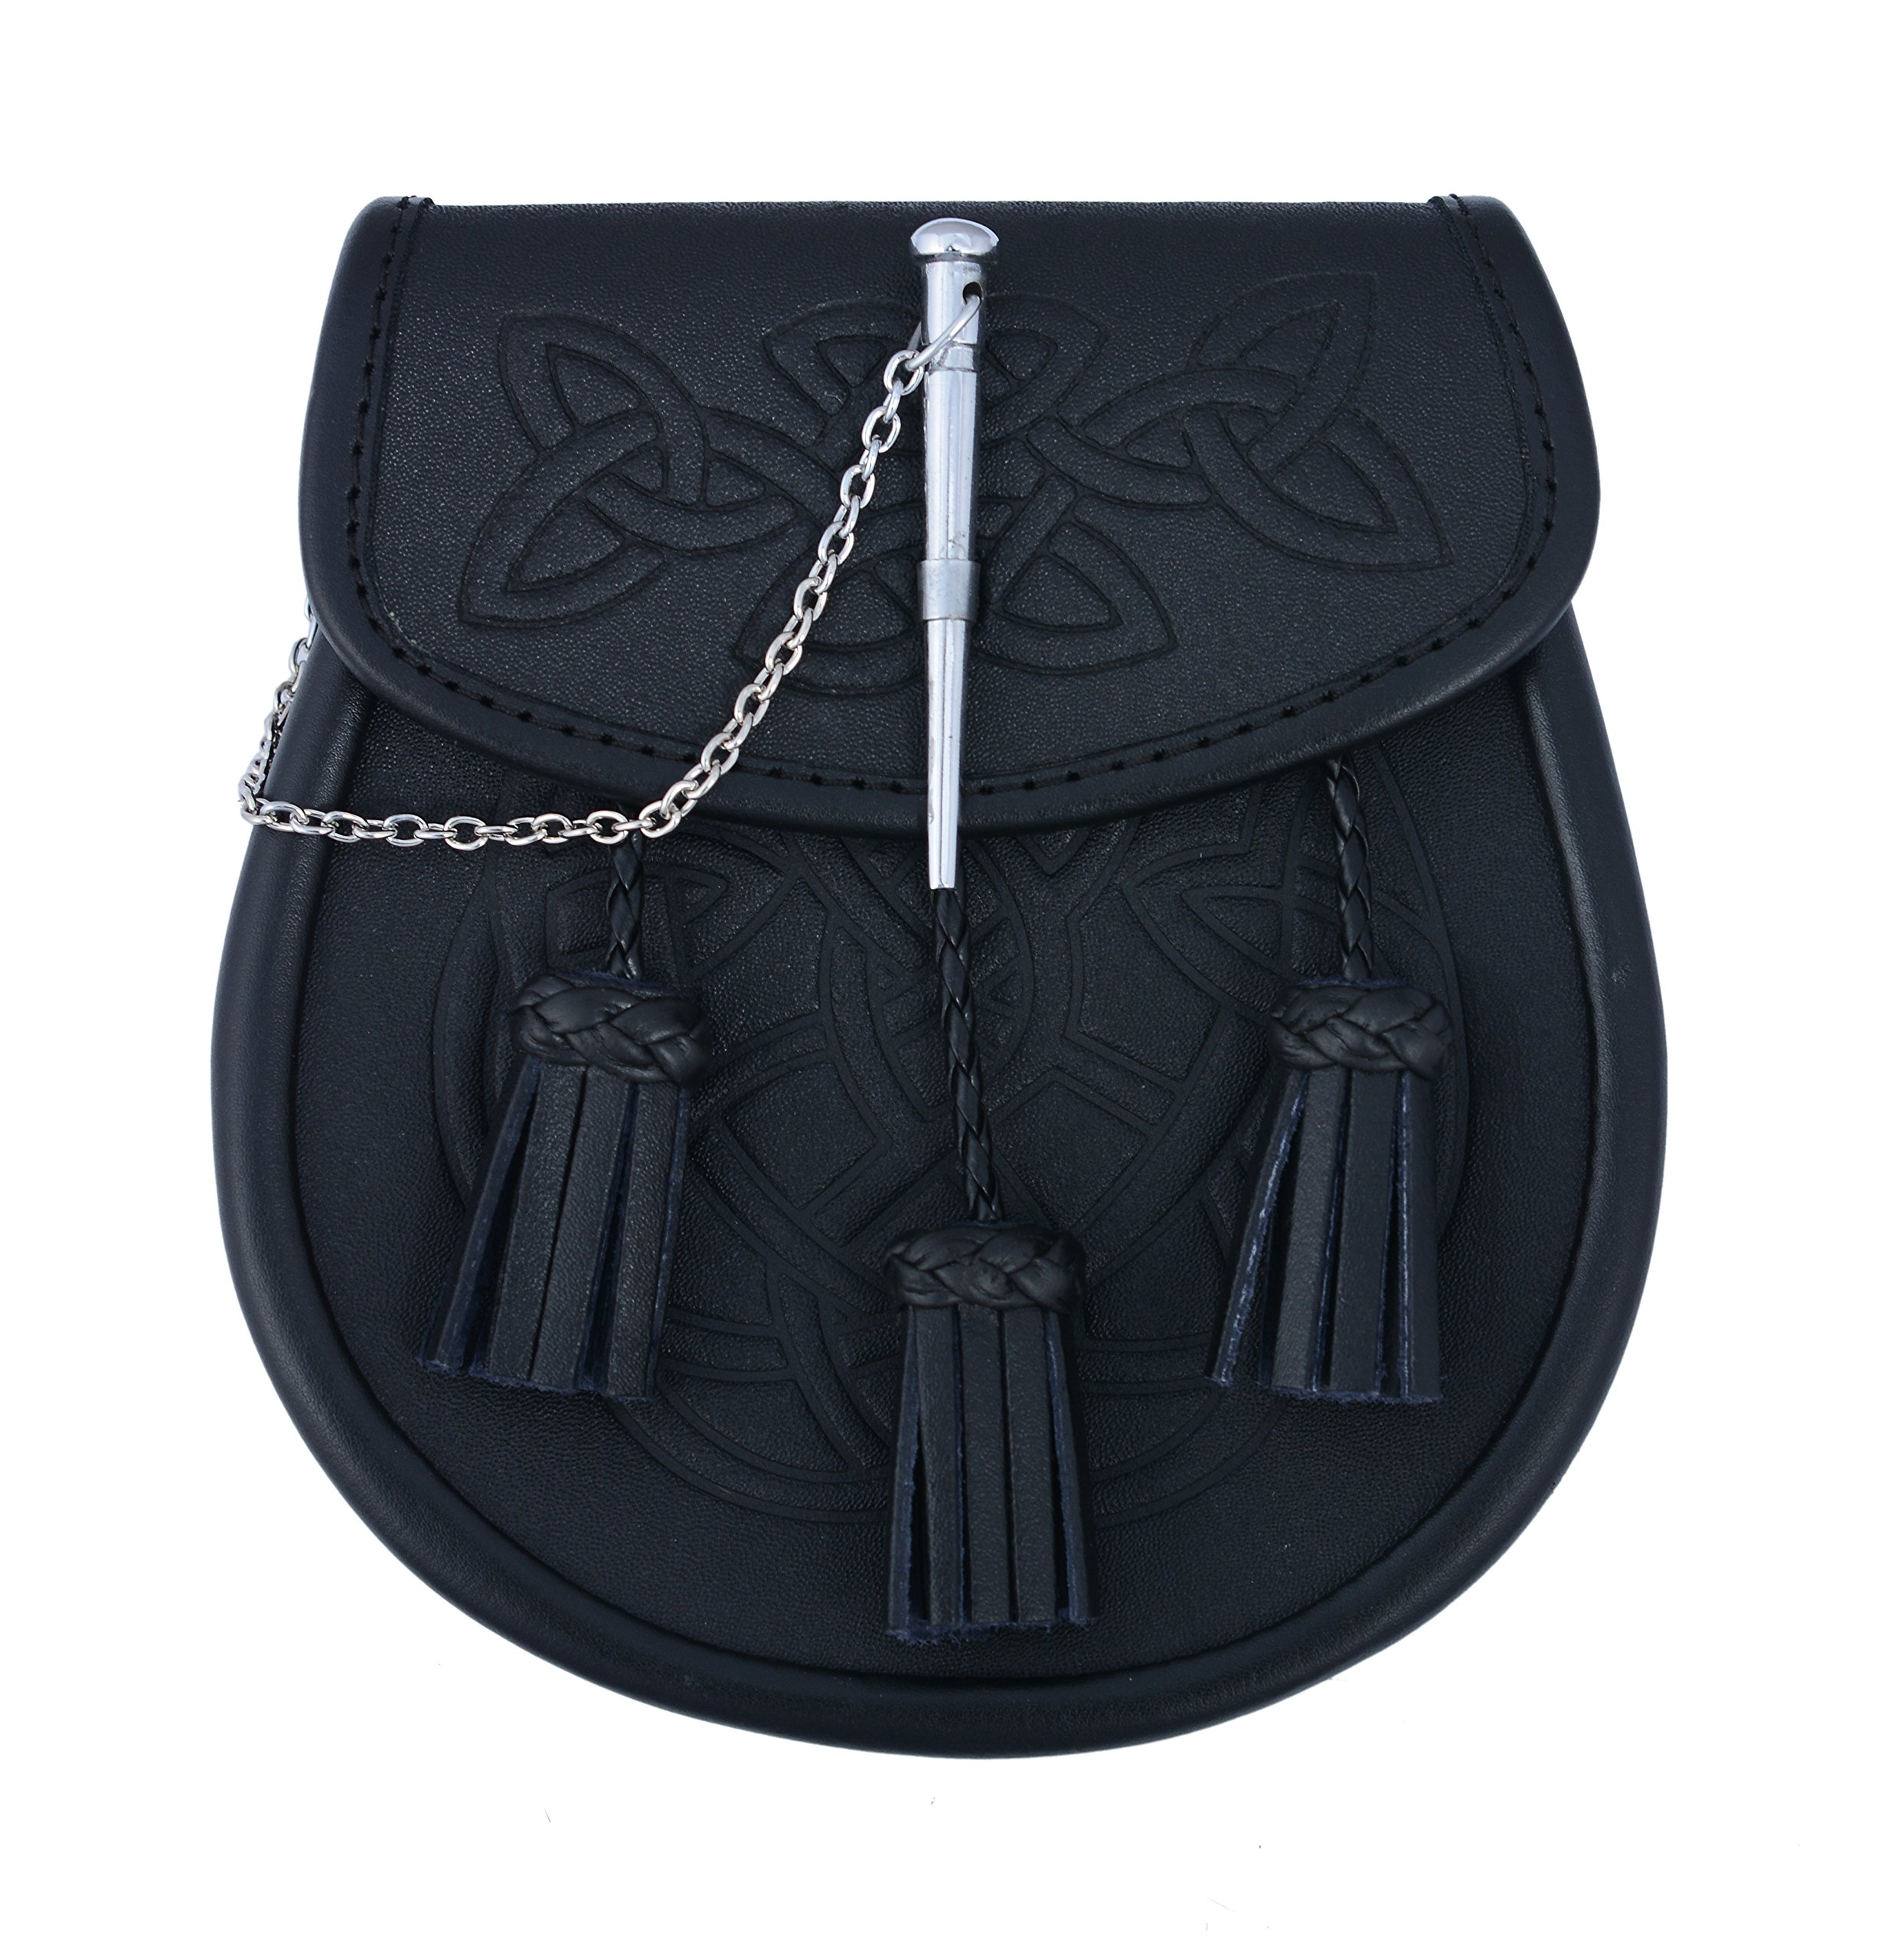 Embossed Black Leather Scottish Kilt Sporran With Pin Lock & Tassels